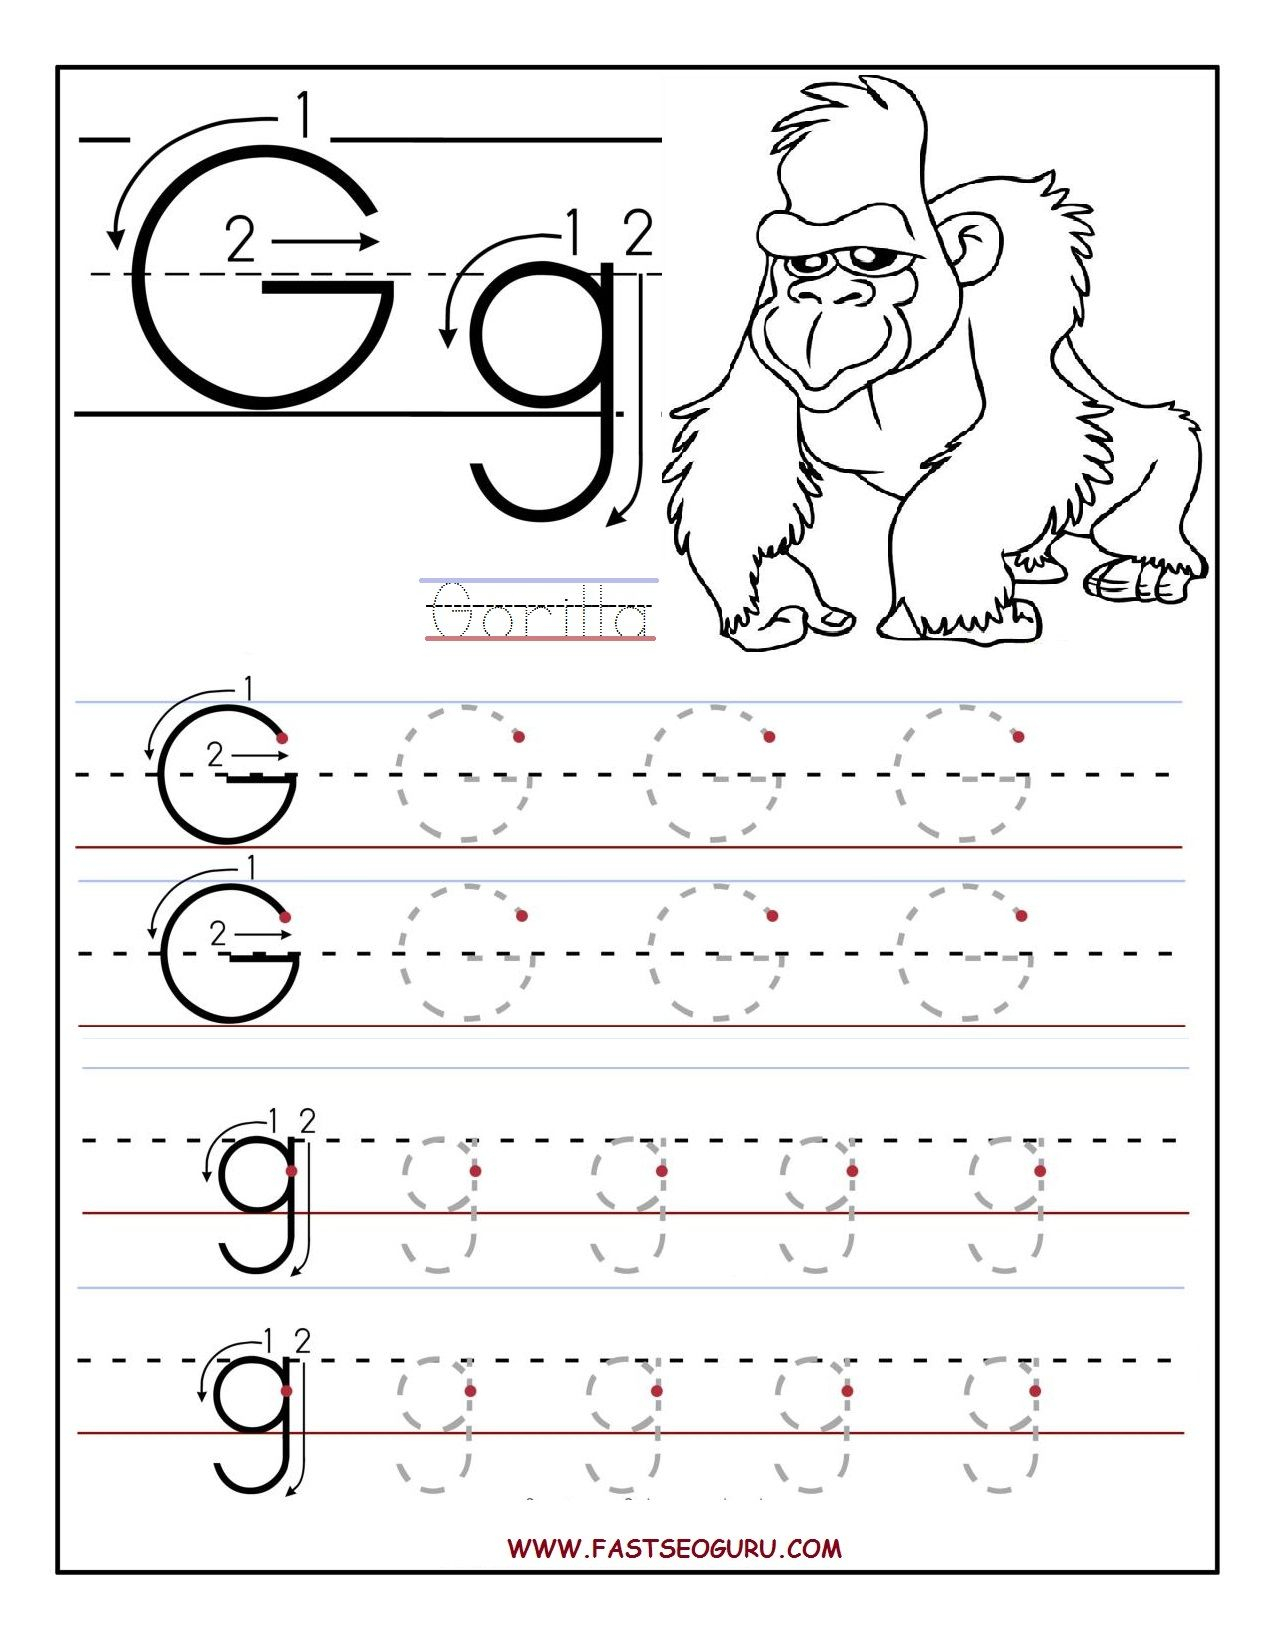 Printable Letter G Tracing Worksheets For Preschool within G Letter Worksheets